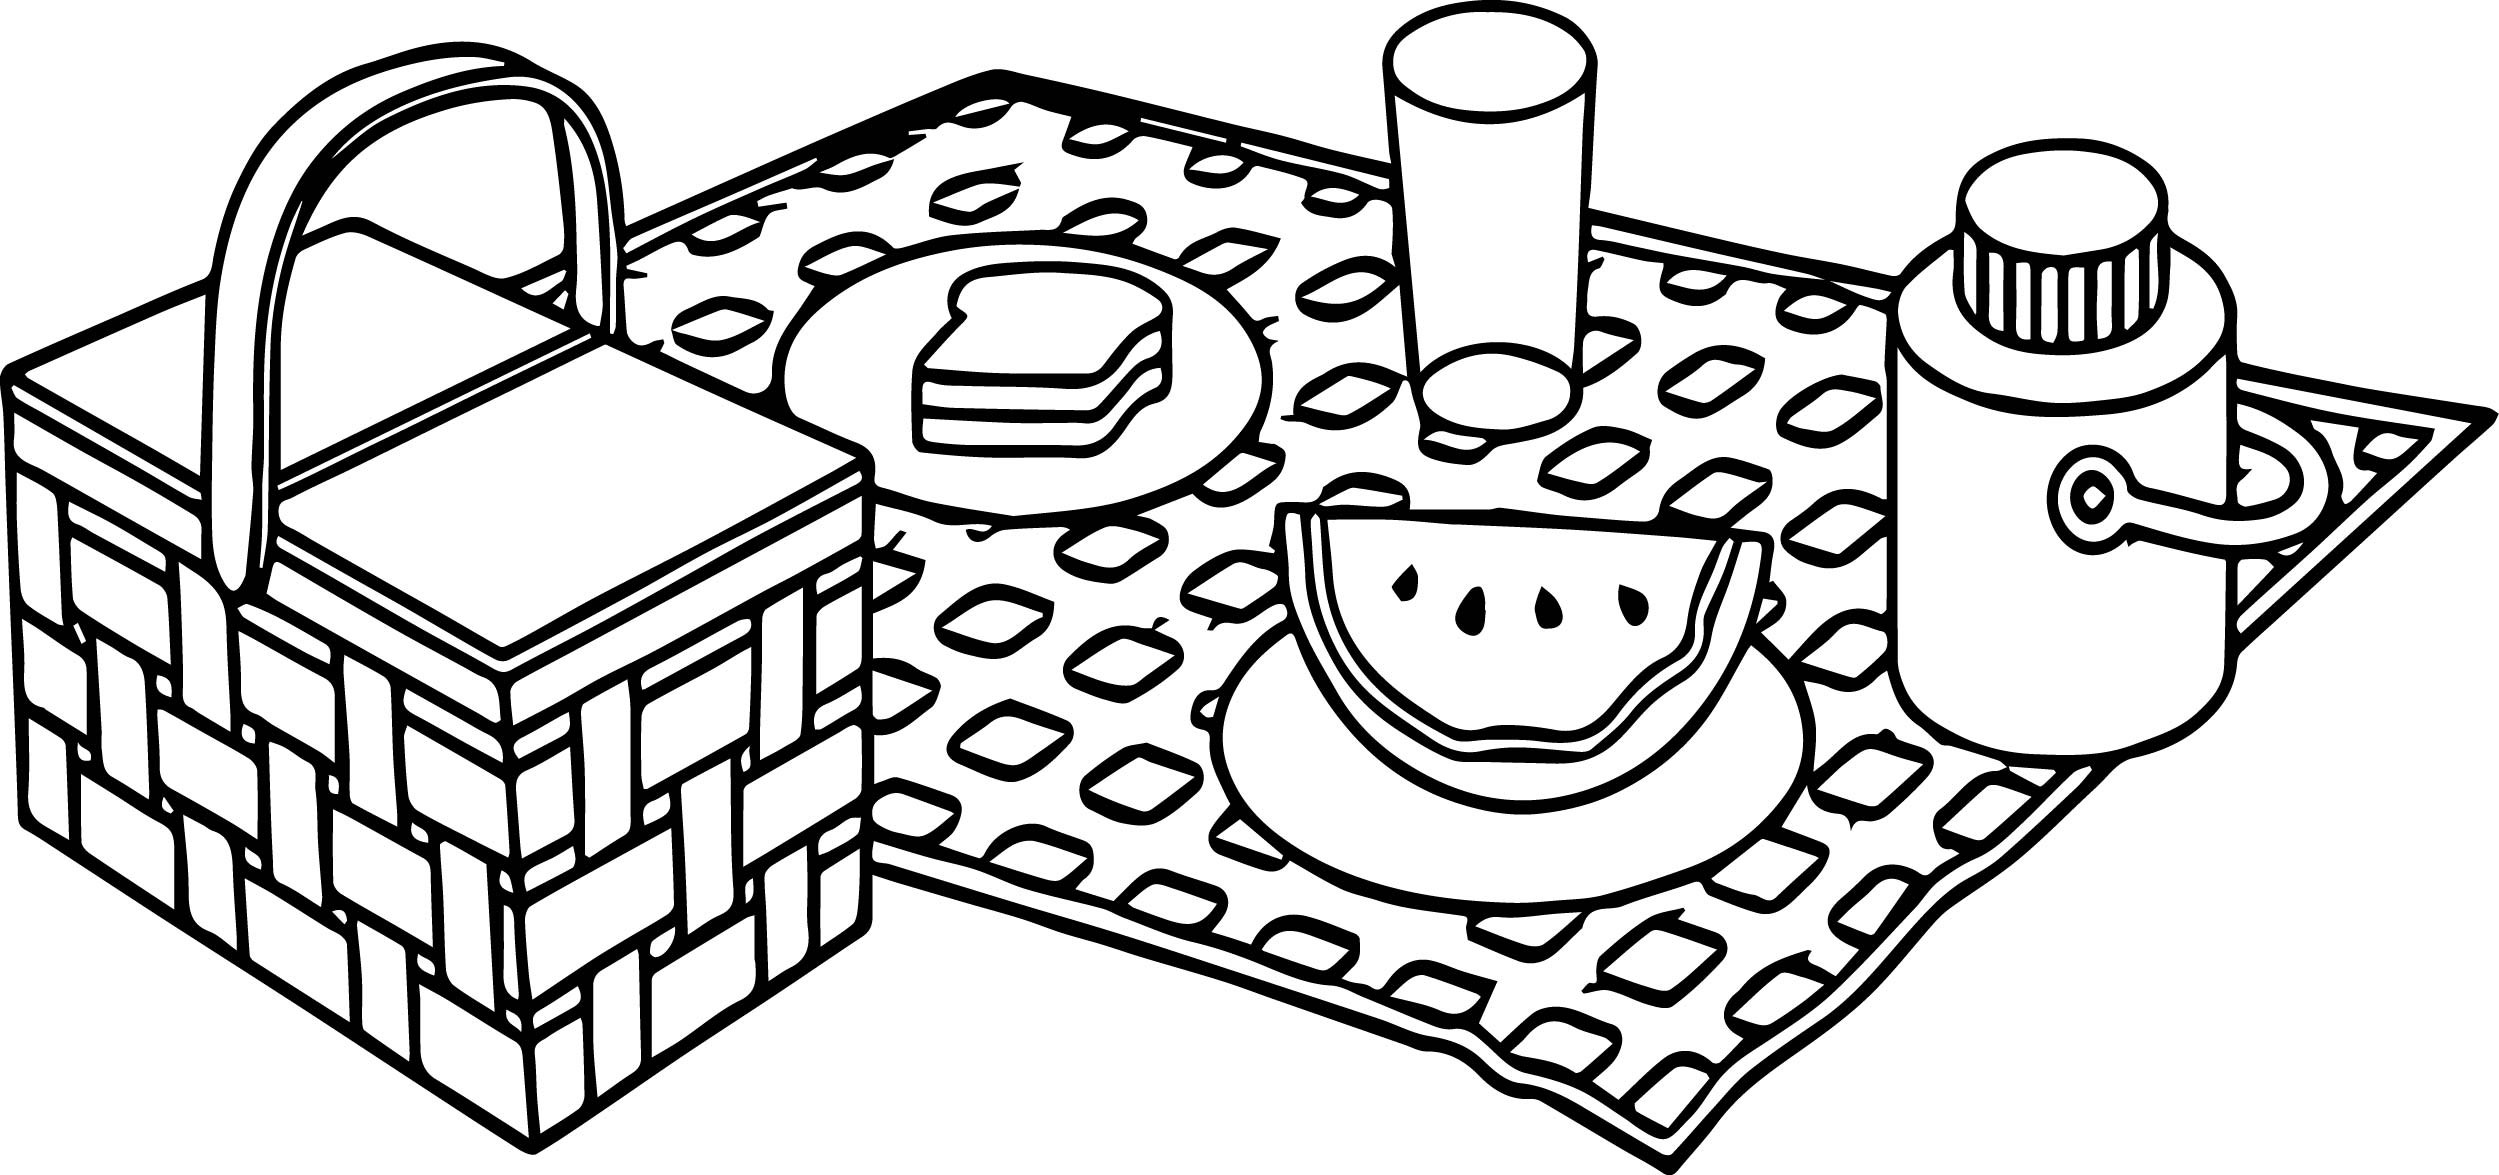 food colouring sheet 20 free printable october coloring pages colouring food sheet